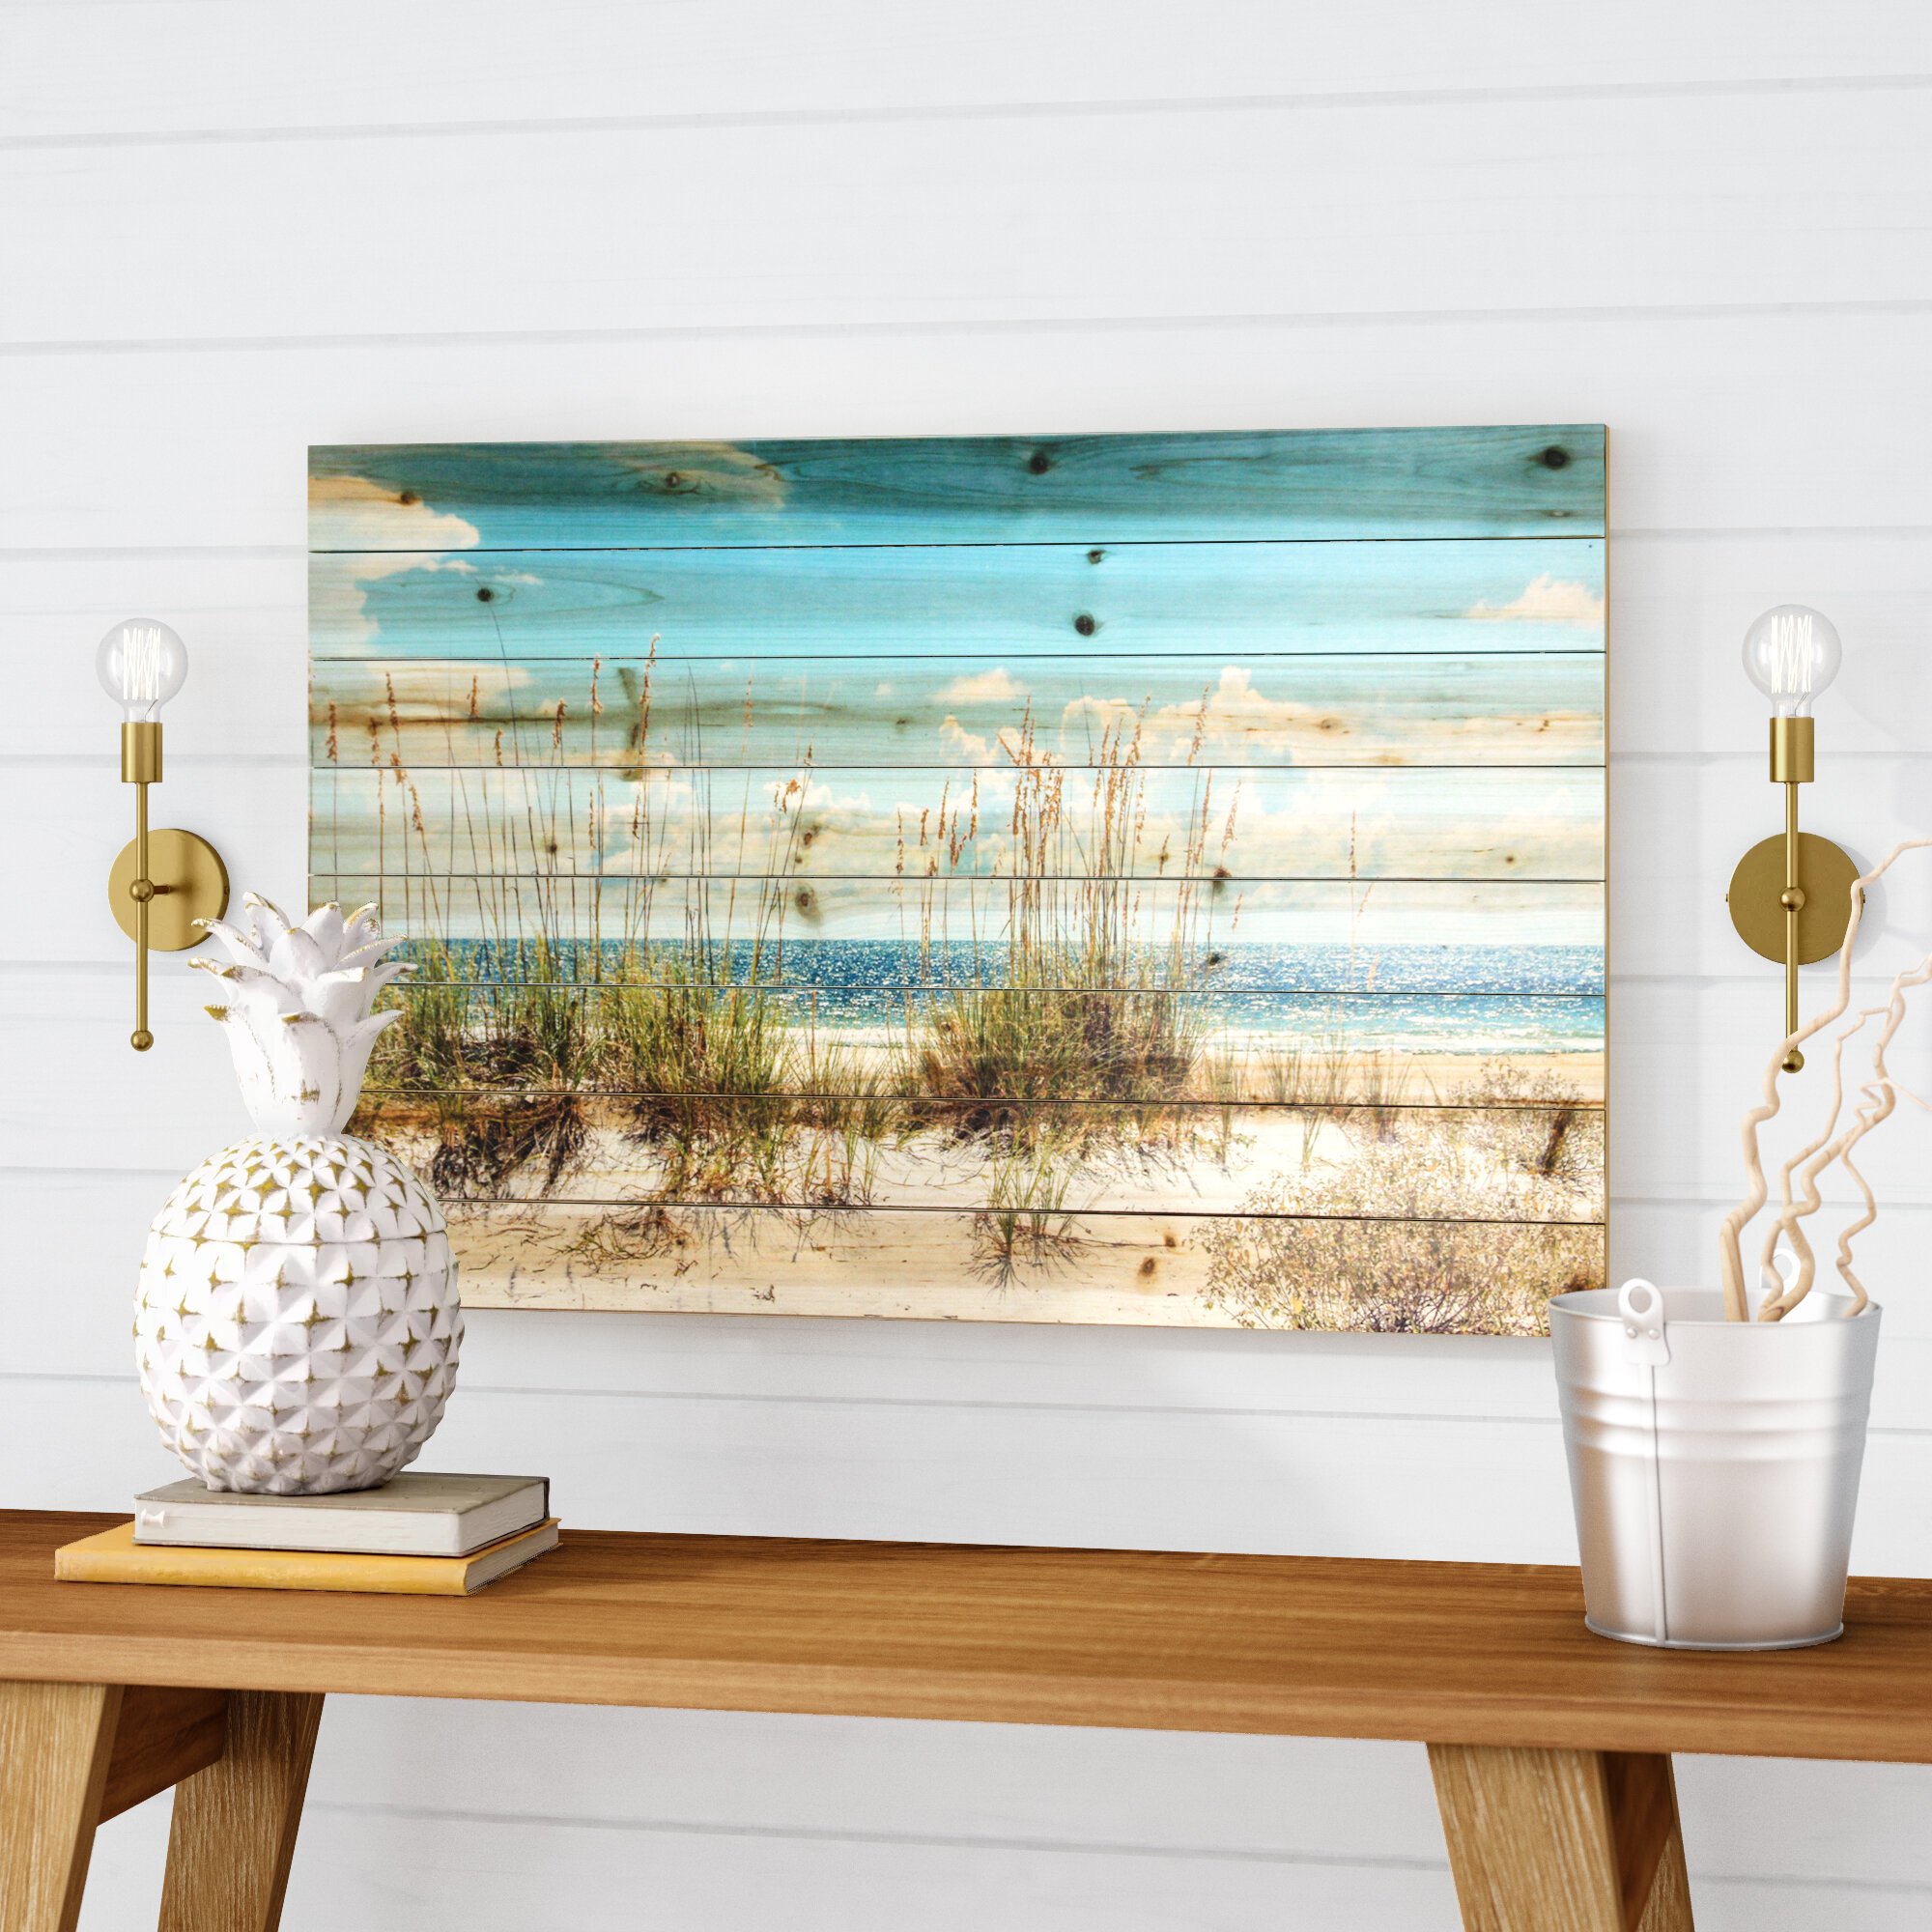 how to decorate with tropical colors home decor ideas.htm coastal wall art you ll love in 2020 wayfair  coastal wall art you ll love in 2020